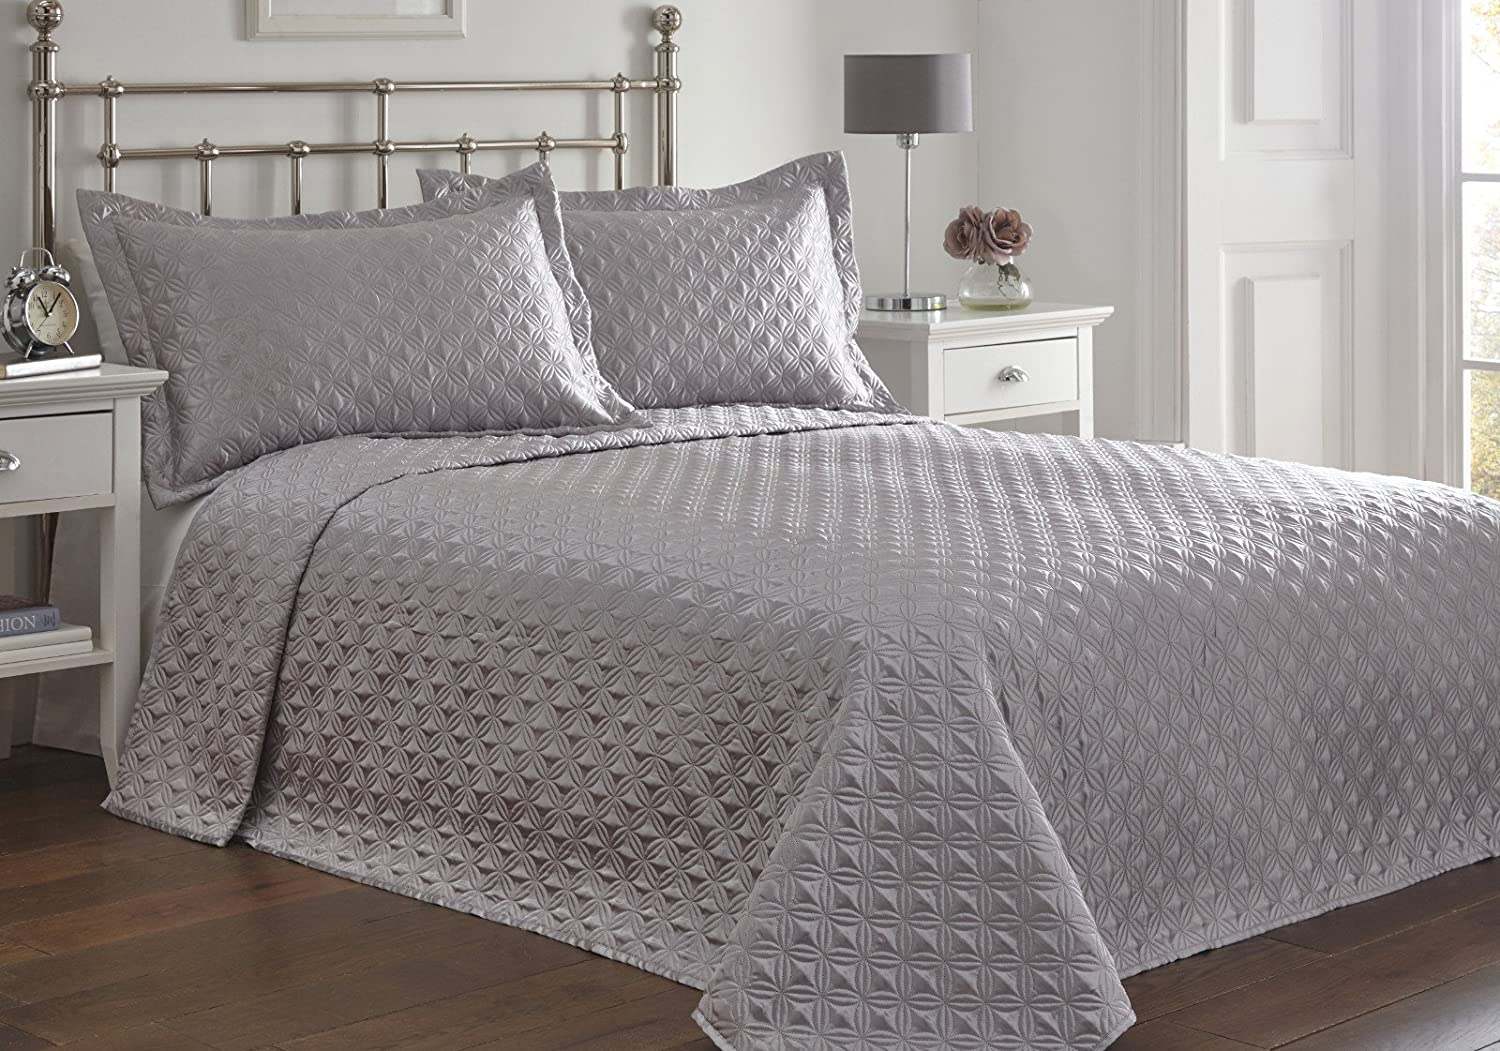 King Size Bed Regent Silver Bedspread Set, Throw Over & Pillow ... : silver quilted bedspread - Adamdwight.com